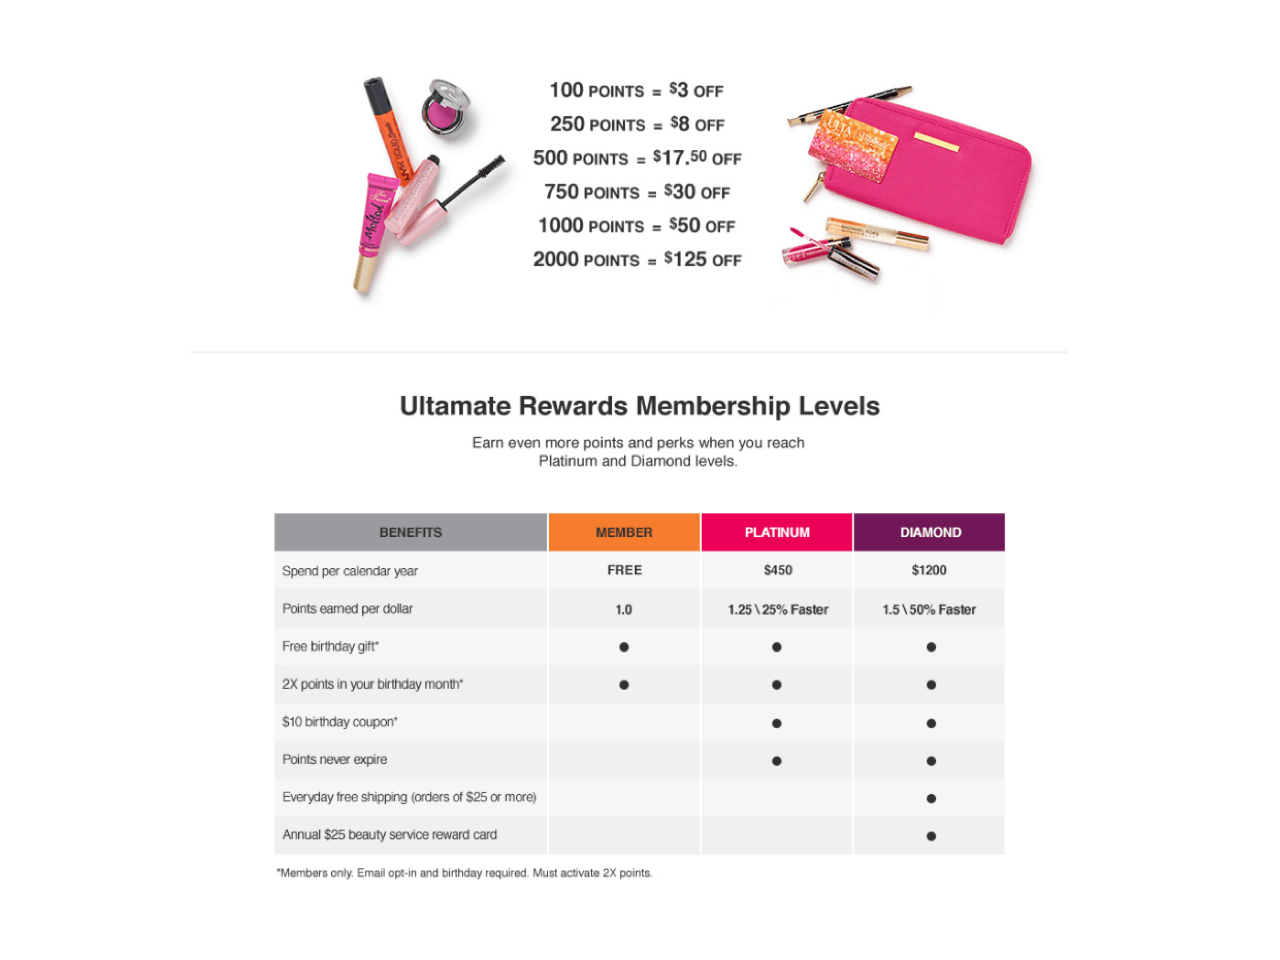 Ulta highlights their cumulative loyalty program and ways to spend points to entice people to join the email list